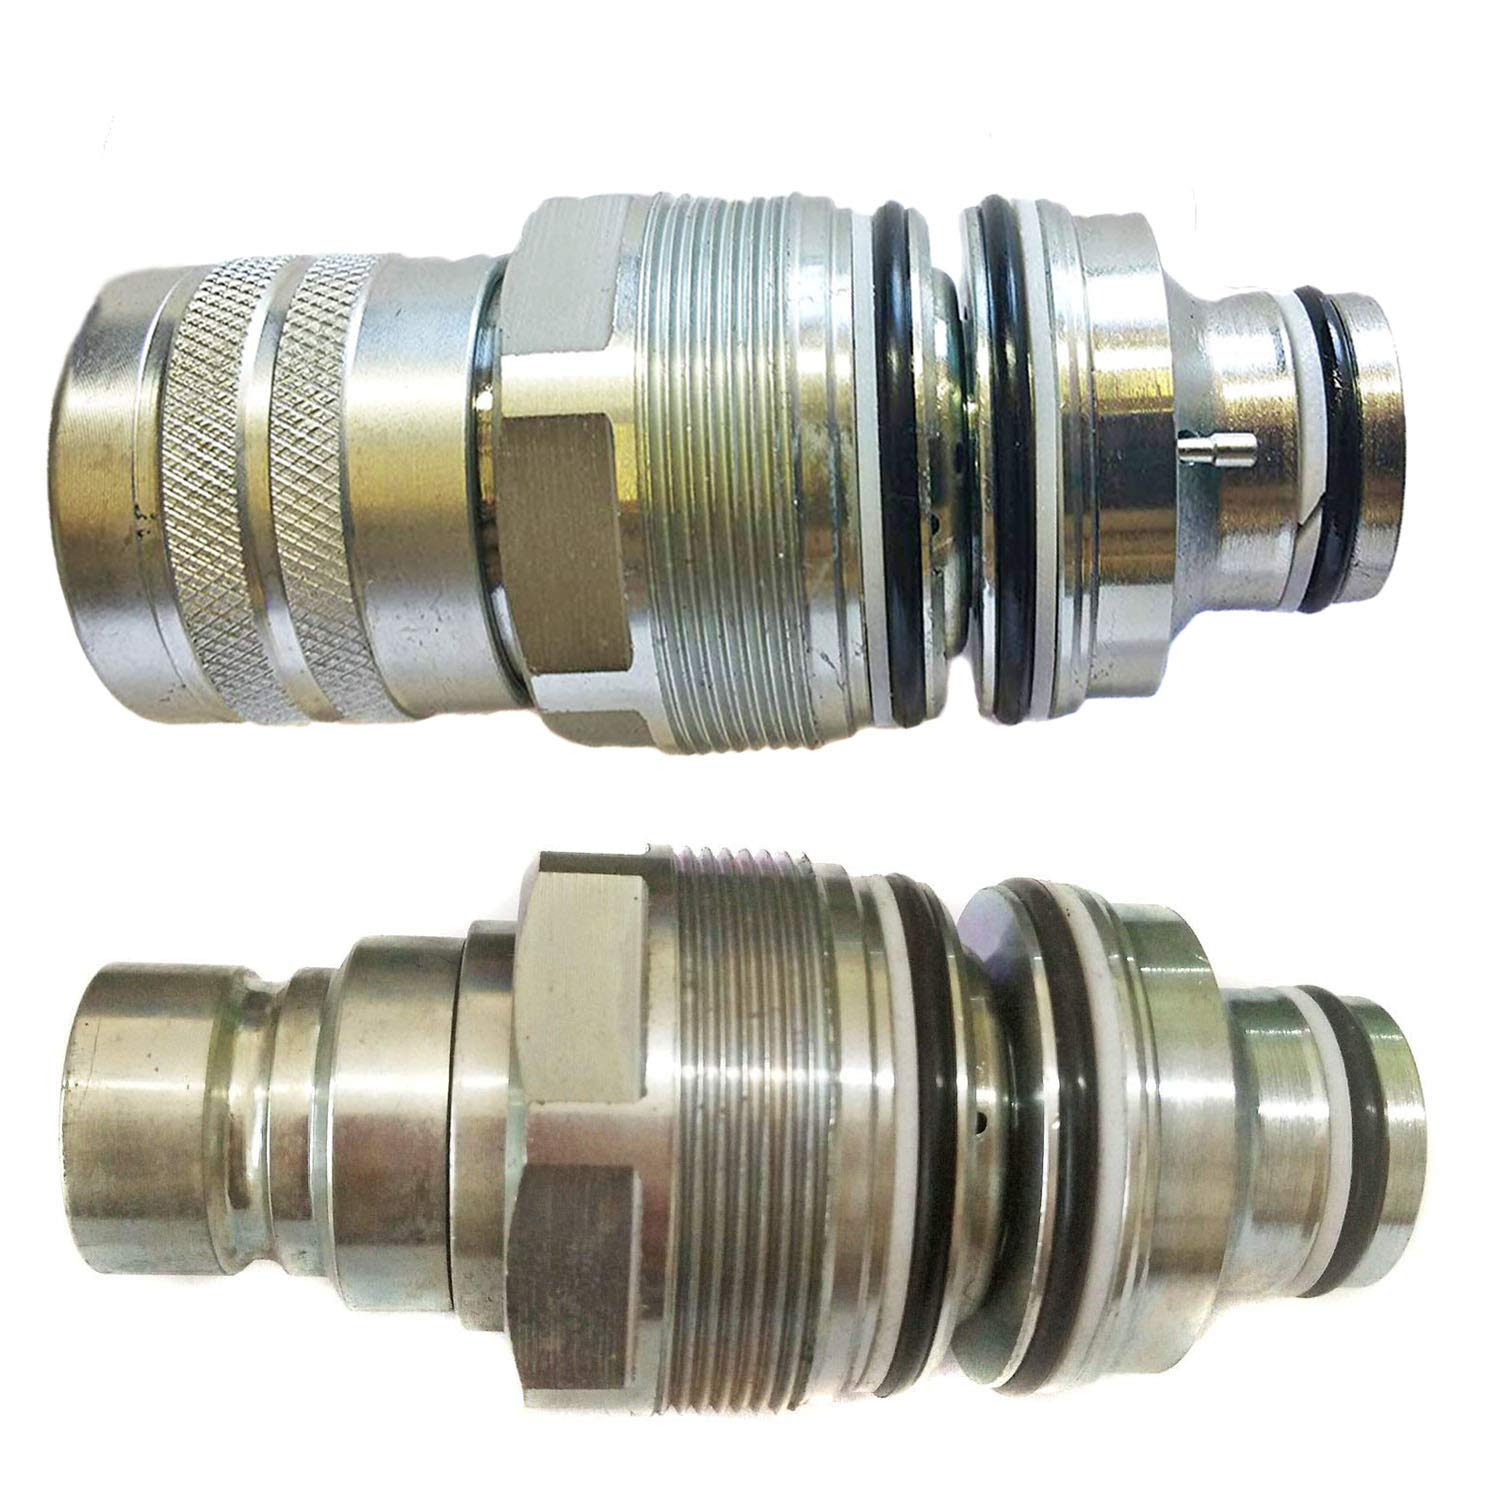 Mover Parts Coupler Set 6679837 6680018 for Bobcat S130 S150 S160 S175 S185 S205 S220 S250 S300 S330 S450 T140 T180 T190 T200 T250 T300 T320 T450 T550 T590 T595 T630 T650 T740 T750 T770 T870